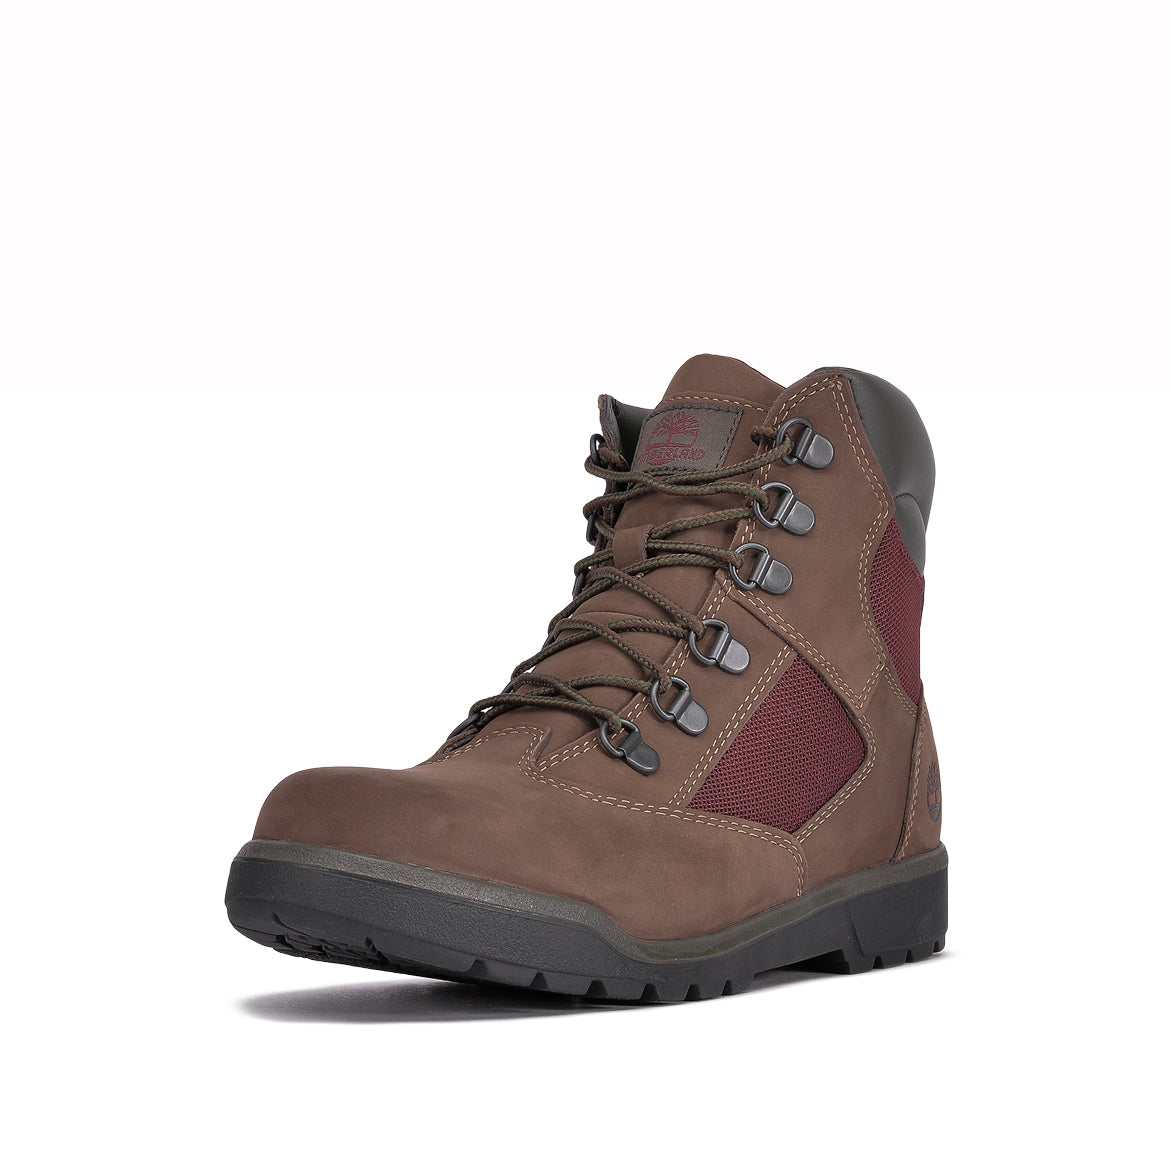 "WATERPROOF 6"" FIELD BOOT (JUNIOR) - DARK BROWN NUBUCK"